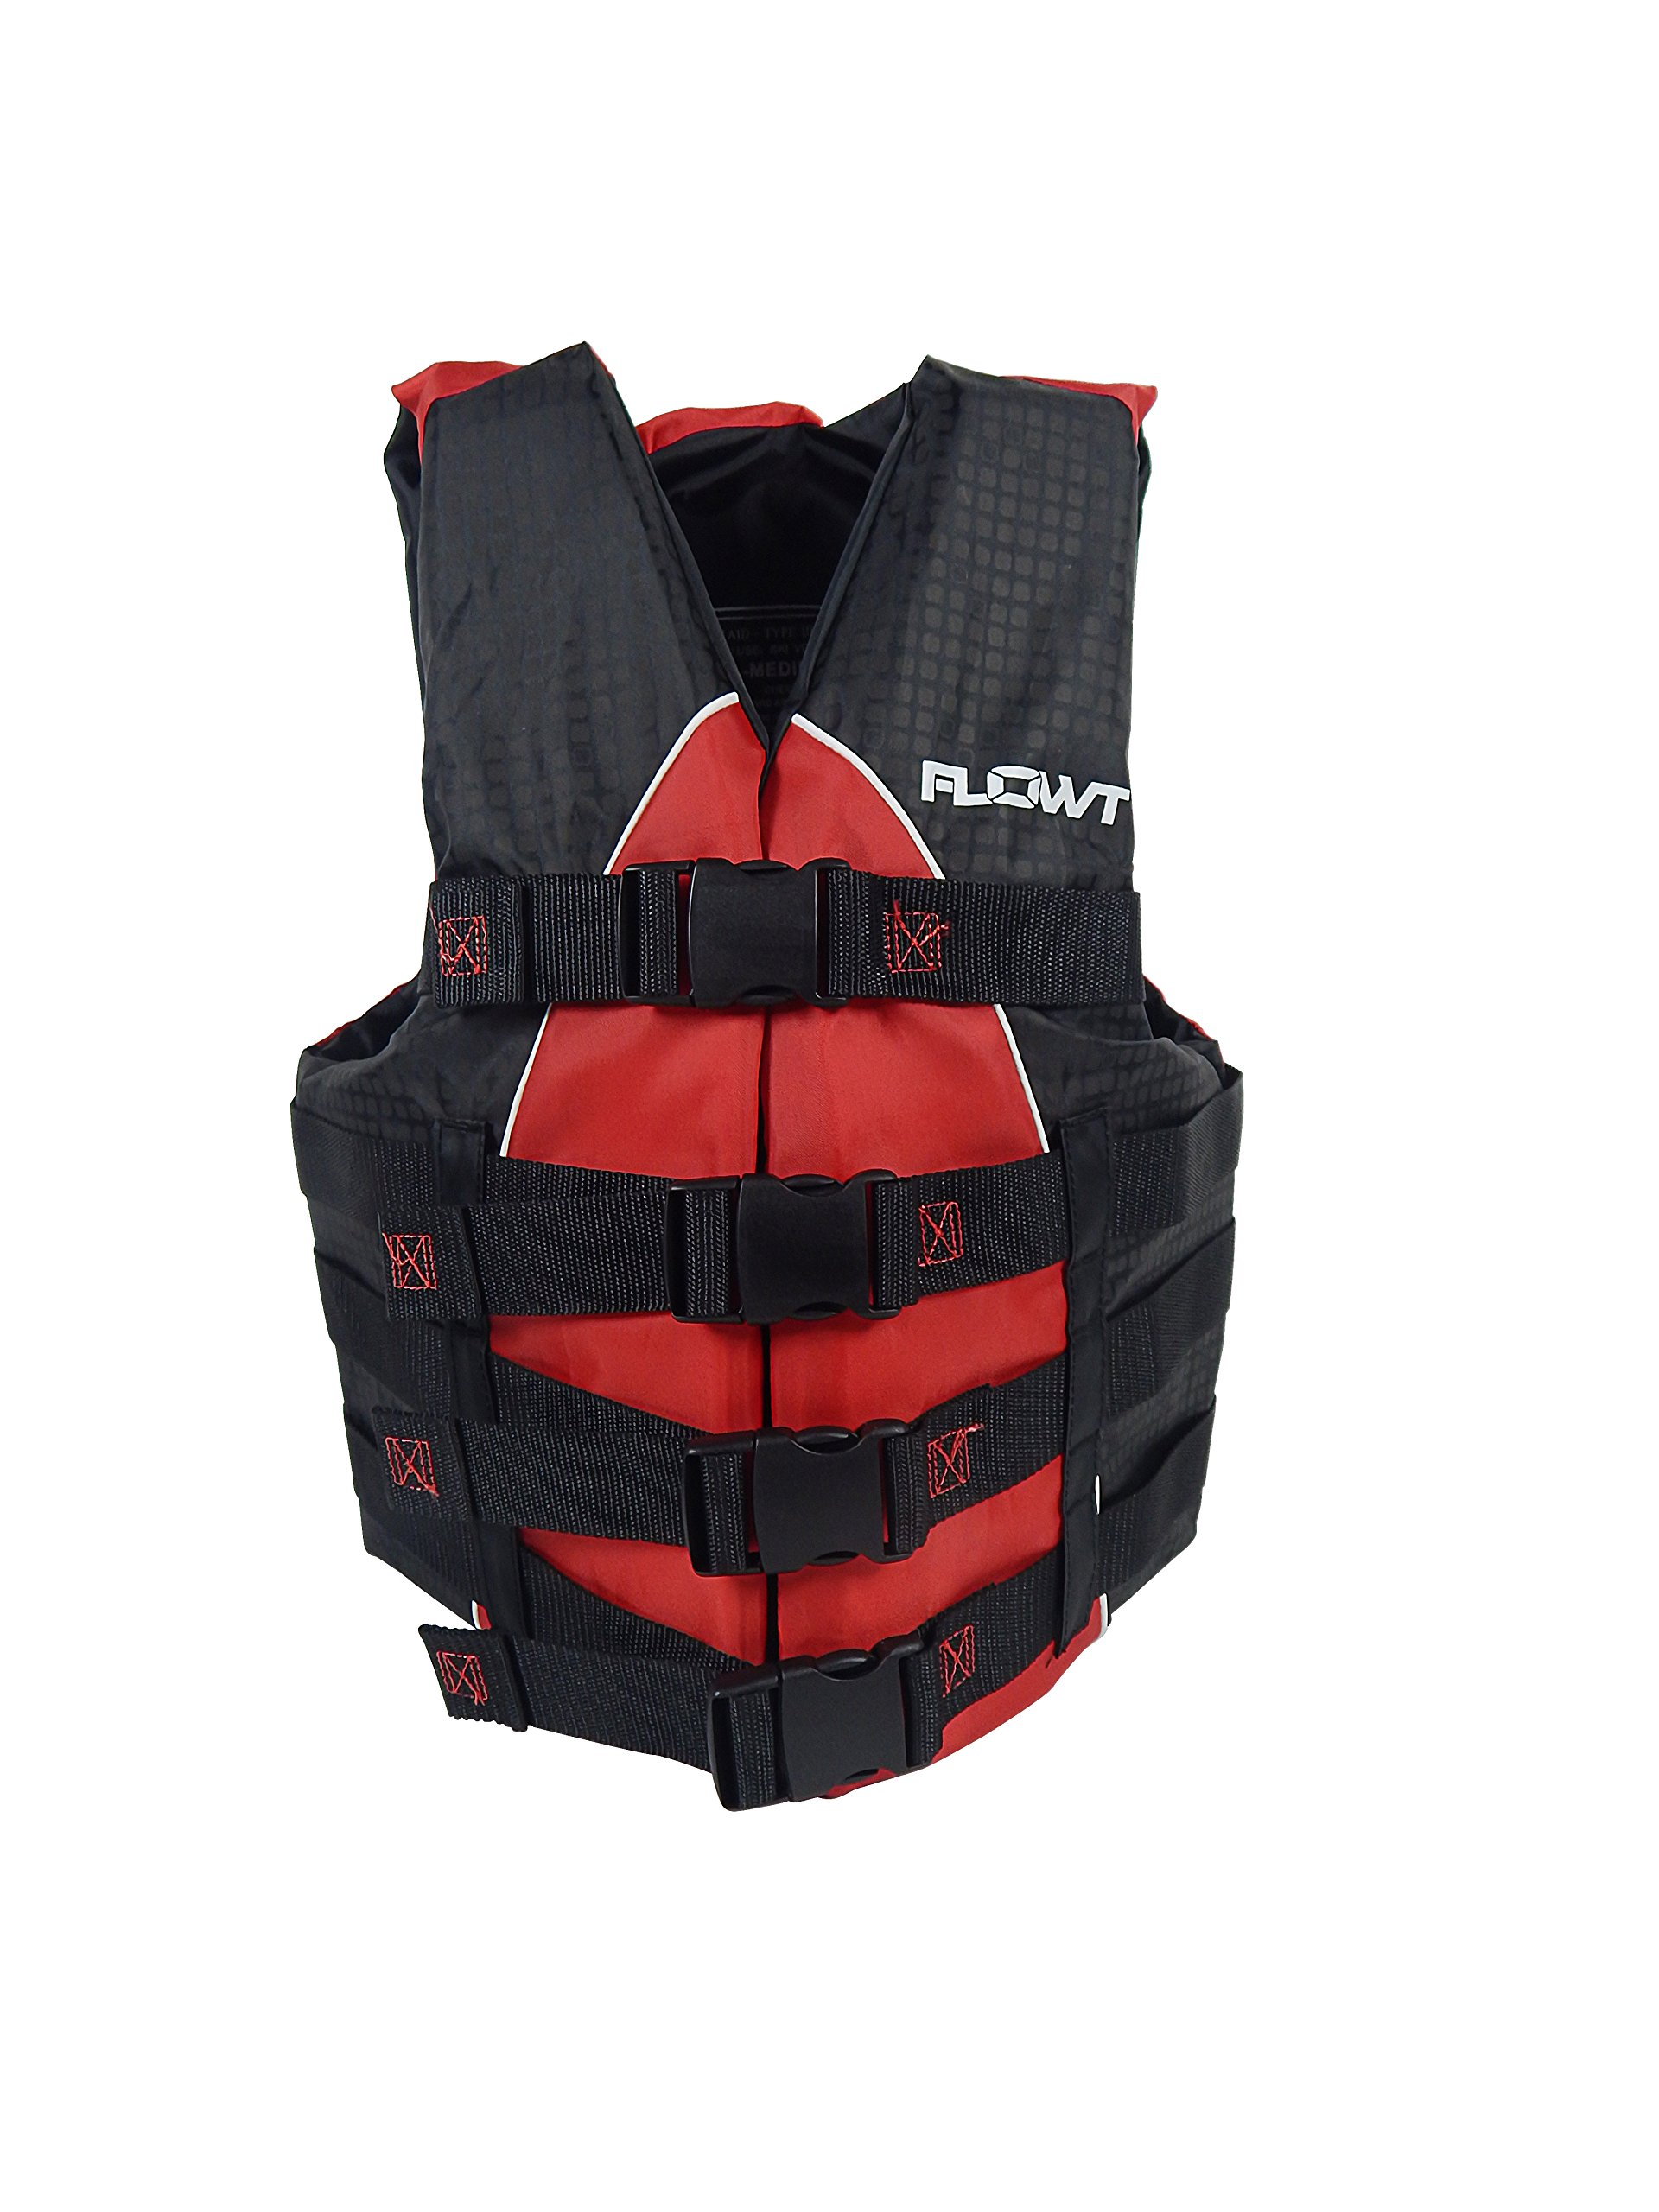 Flowt 40402-2-S/M Extreme Sport Life Vest, Type III PFD, Closed Sides, Red, Small / Medium, Fits chest sizes 32'' - 40'' by Flowt